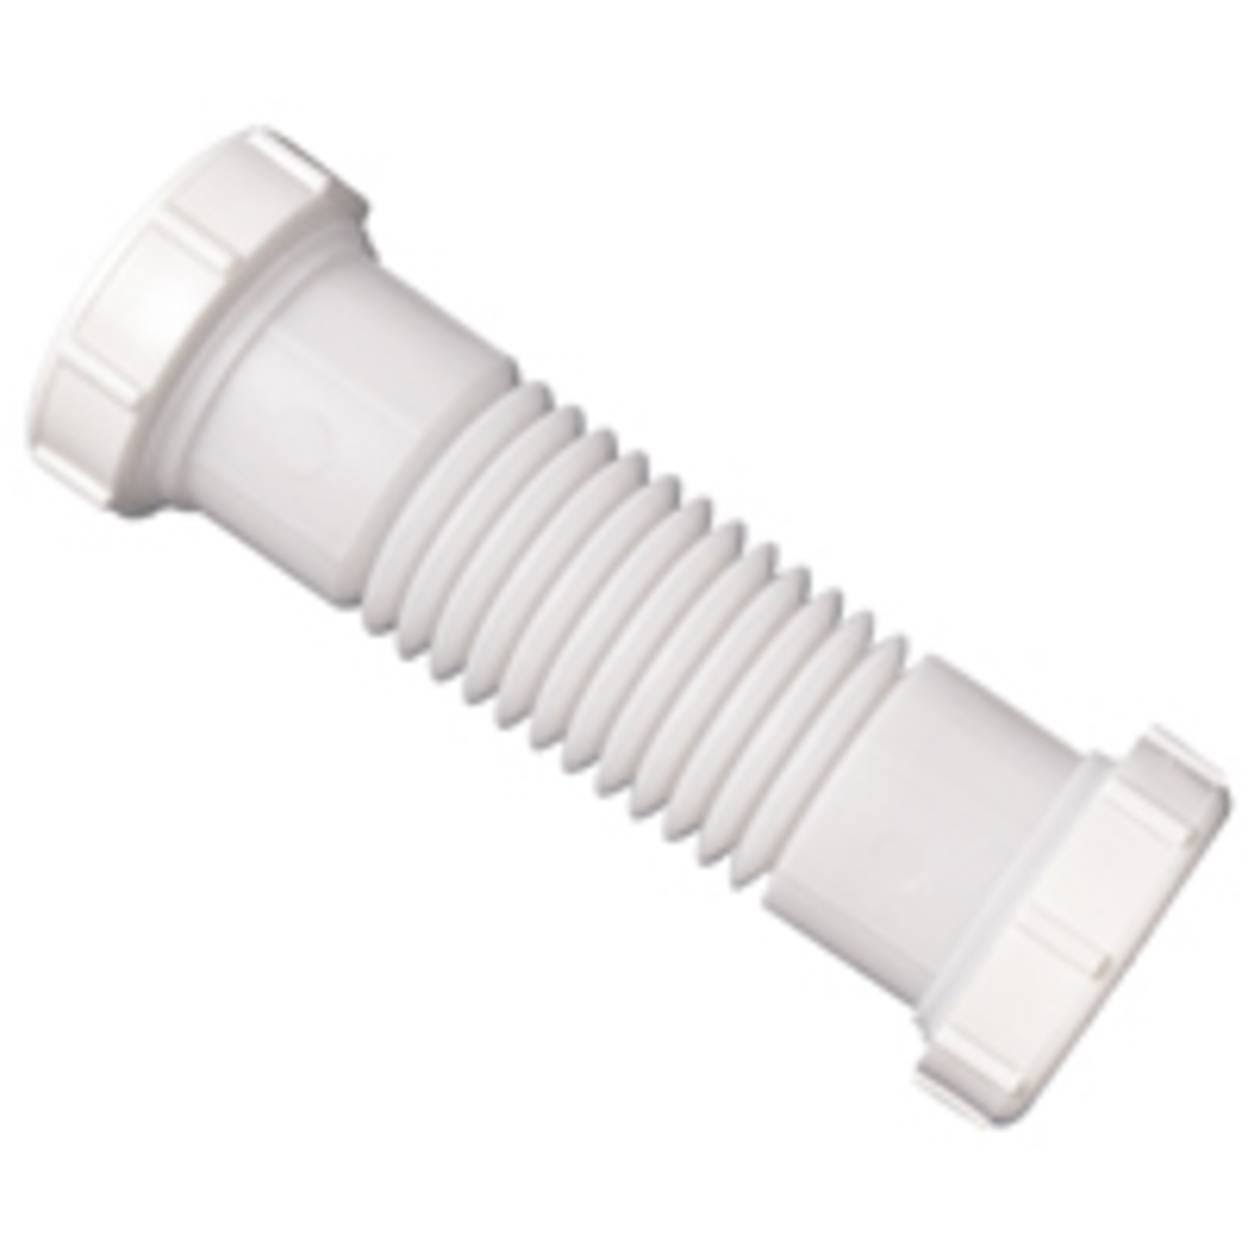 Plumb Pak PP21215 Double Sink Drain Coupling - White, 1-1/2""